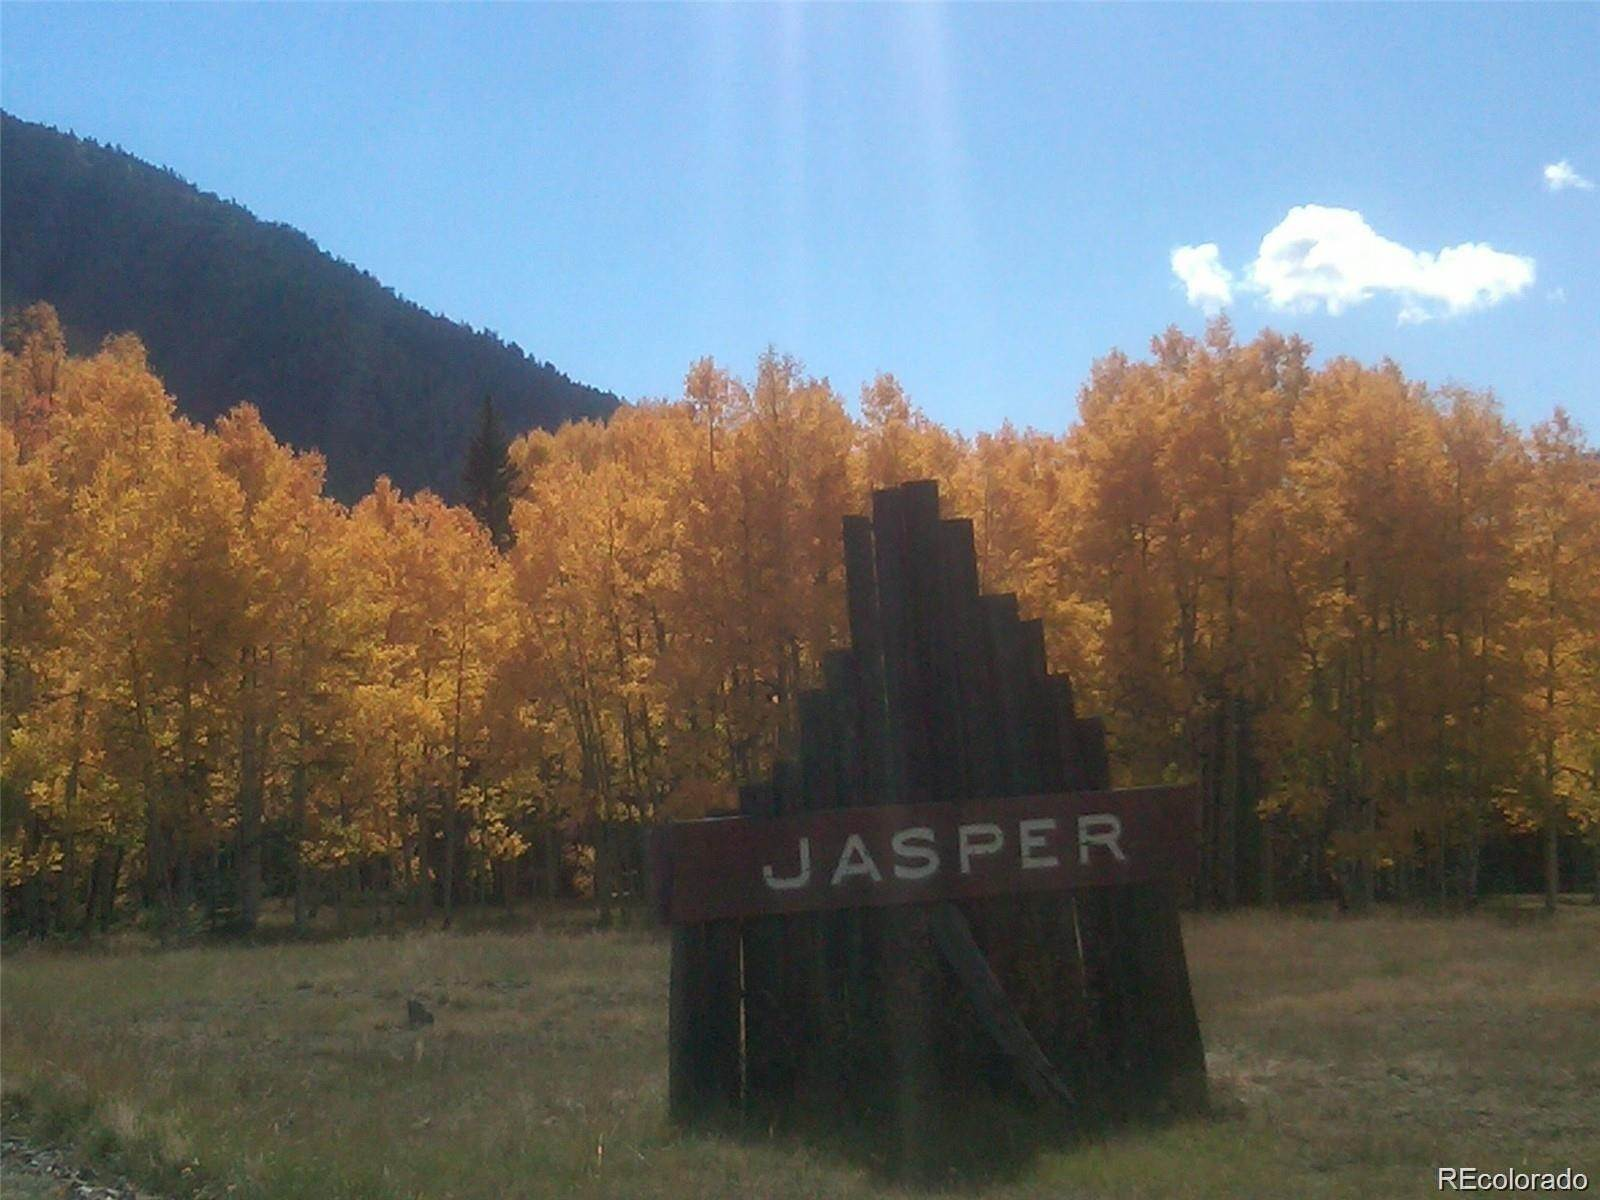 Land at Lots 7-9 Block 90 Jasper, Colorado 81144 United States